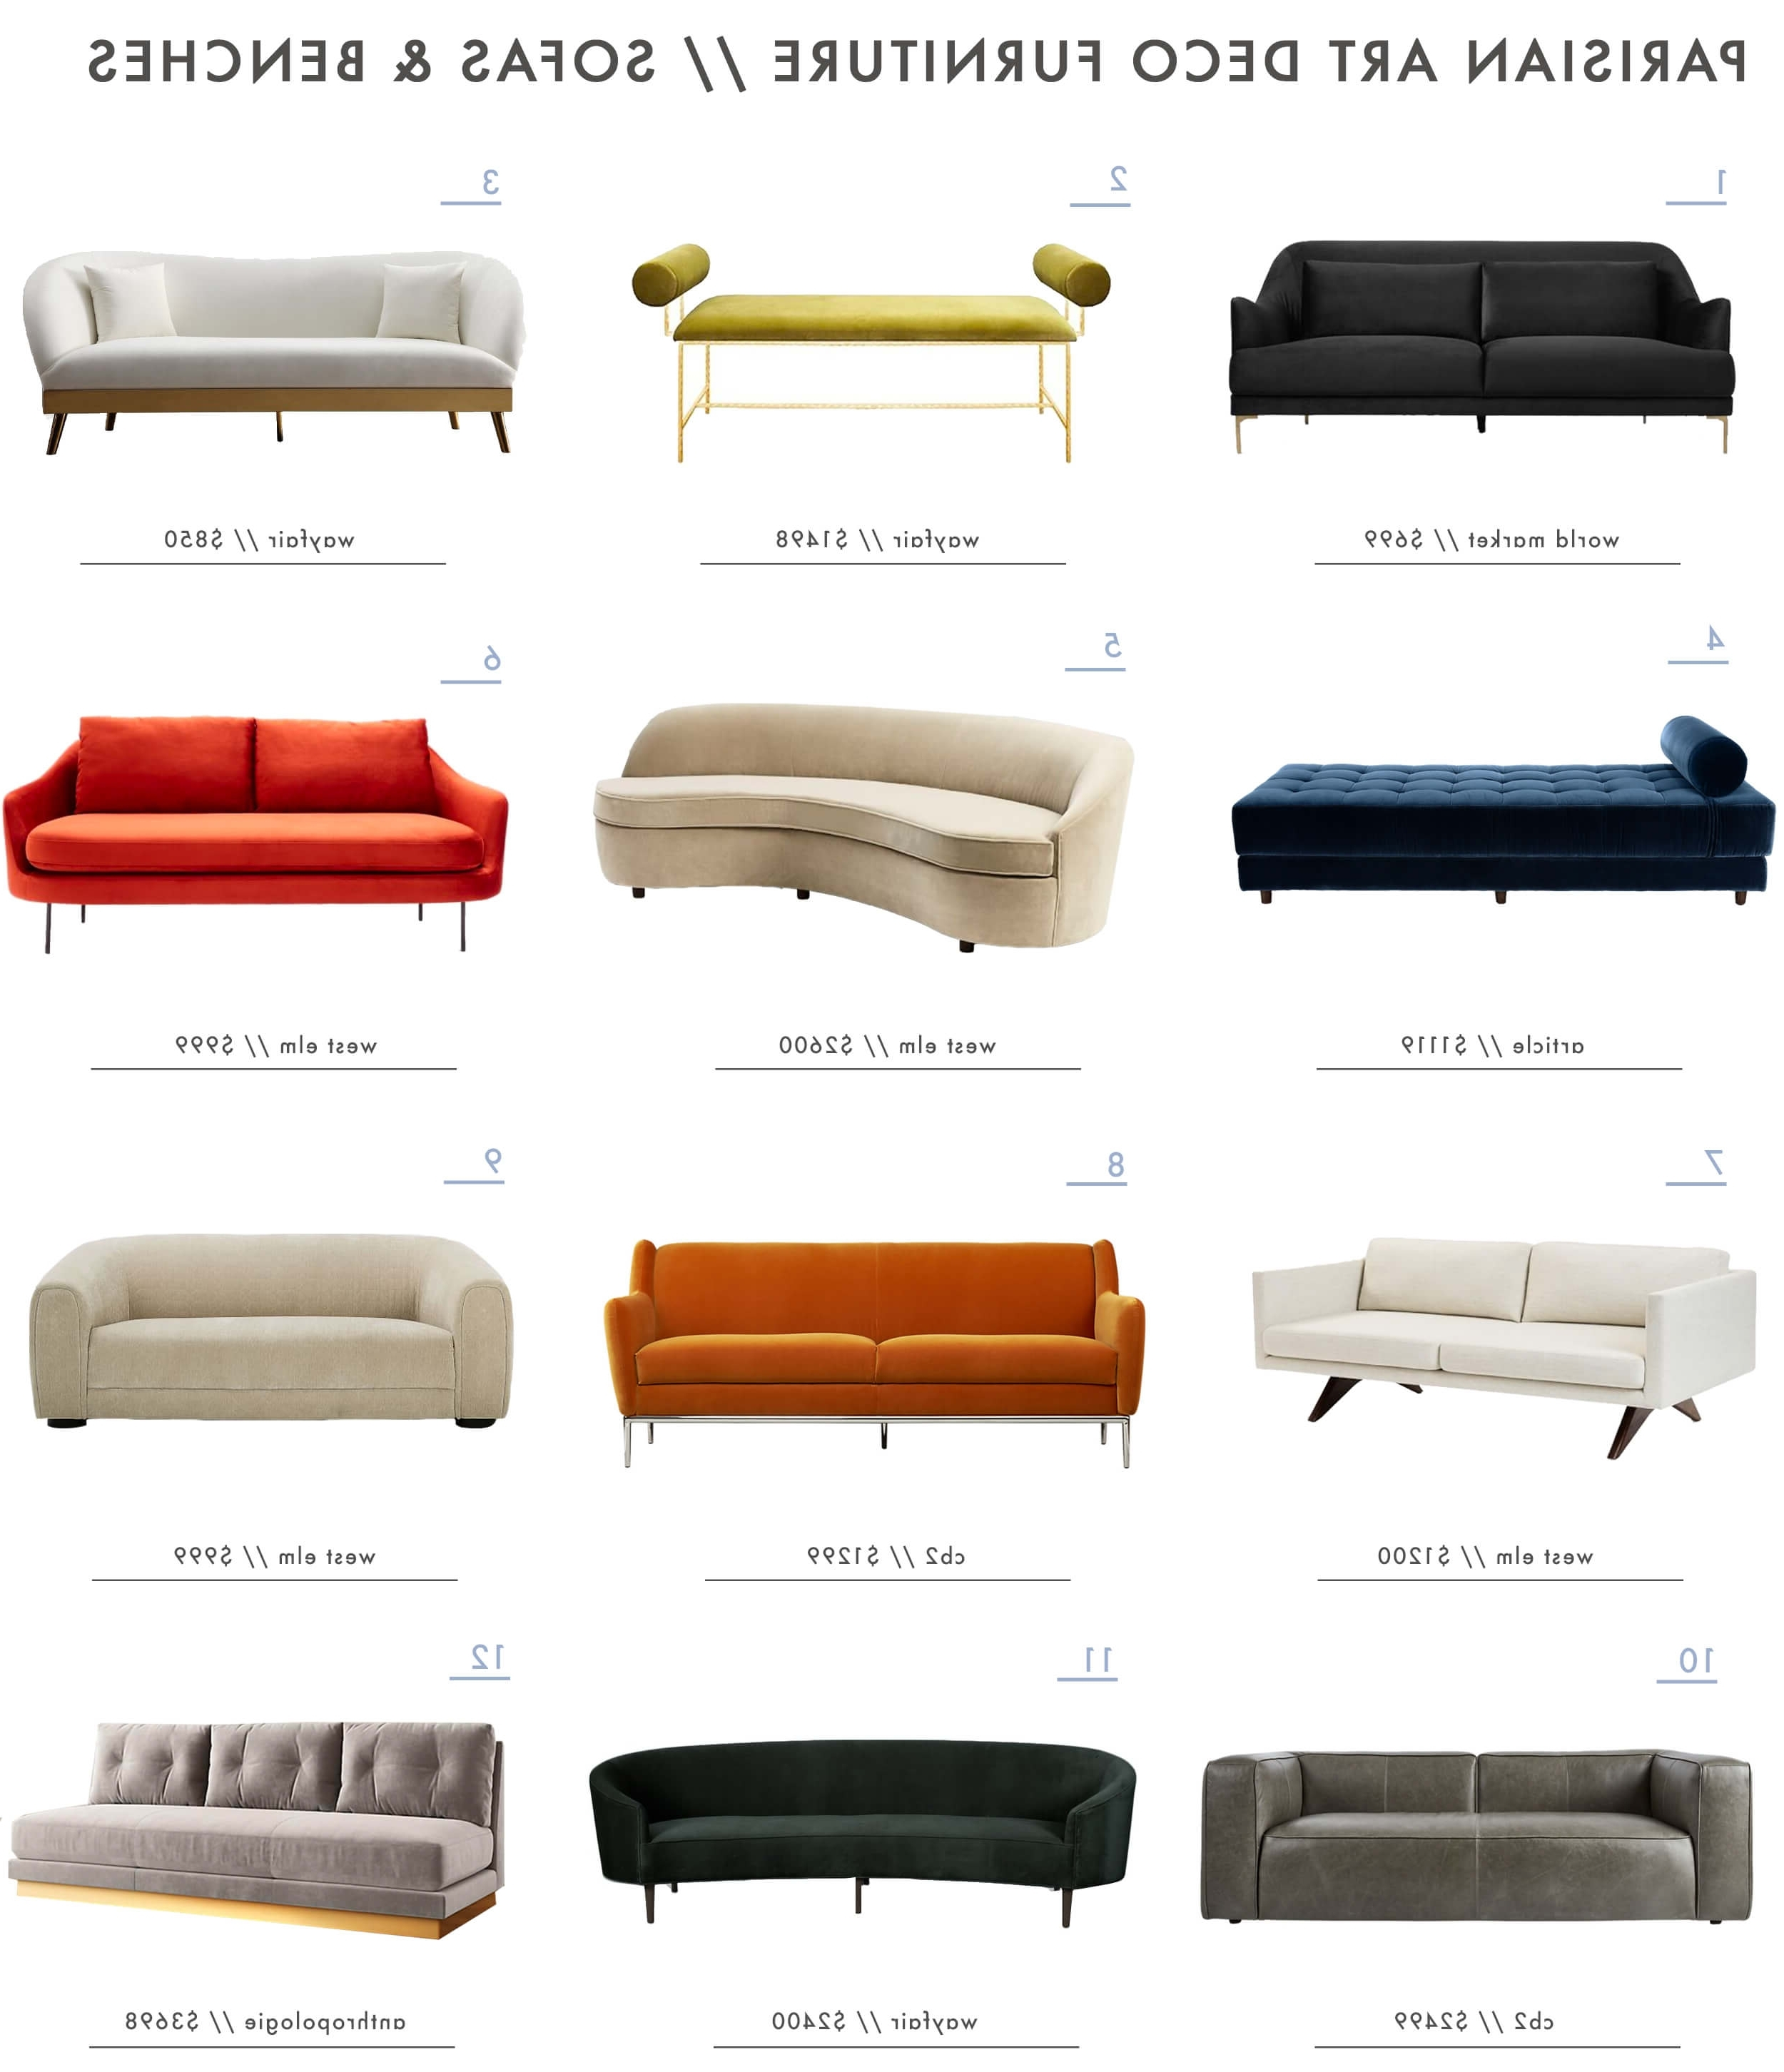 2017 Achieving The Parisian Art Deco Style: Furniture – Emily Henderson Within Art Deco Sofas (View 15 of 15)